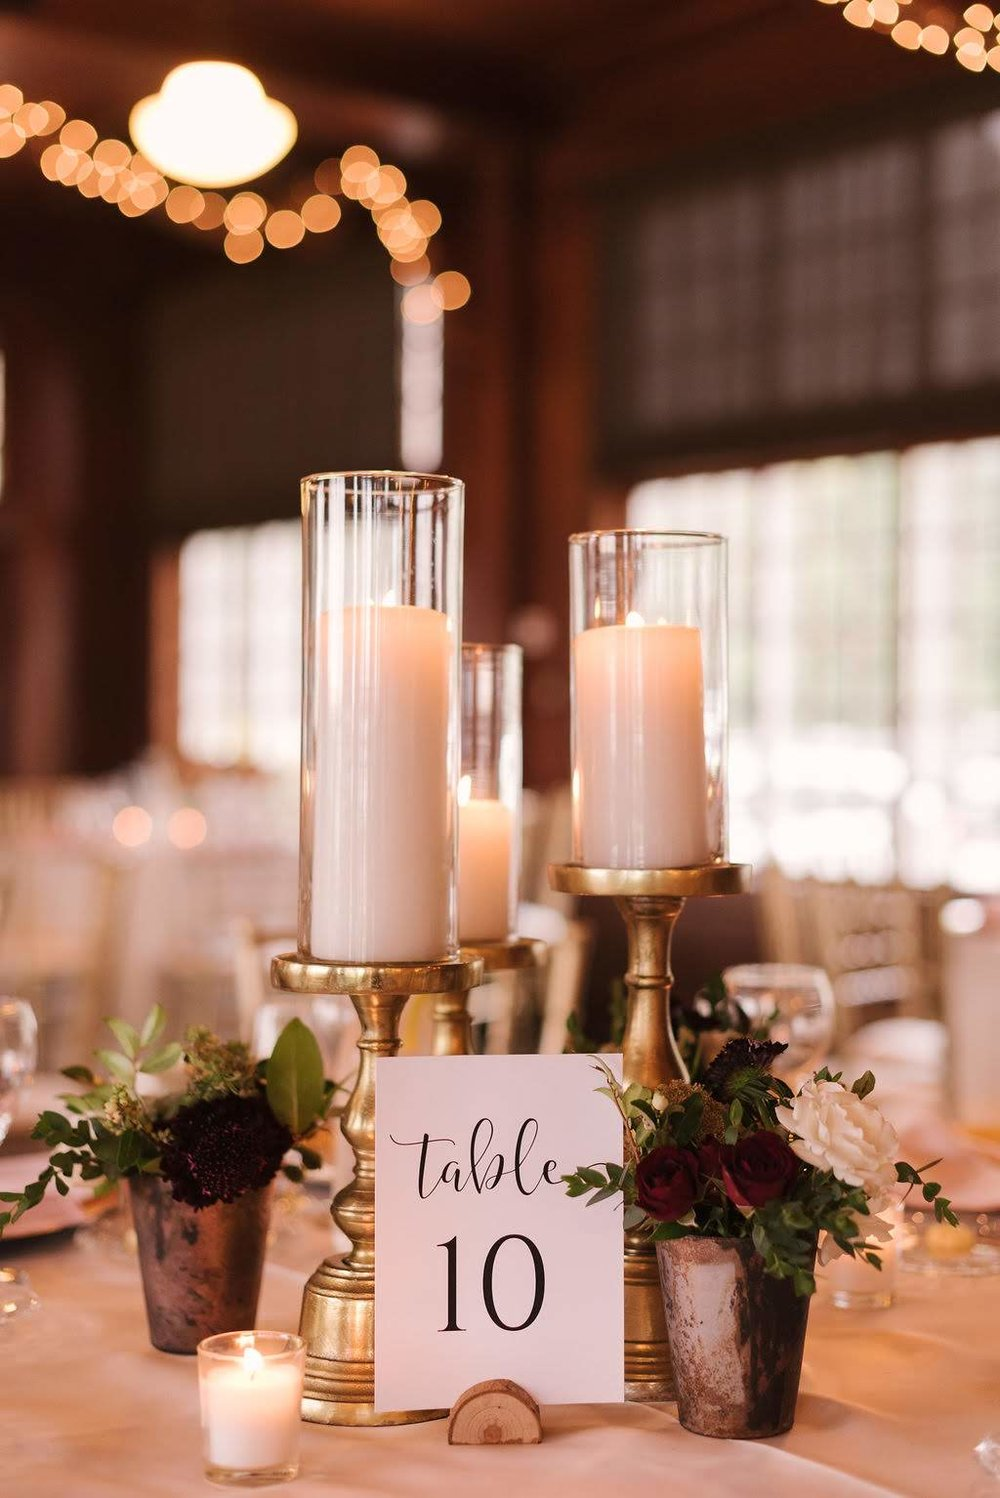 Pillar candles, votive candles and bud vases scattered around the room added a warm candlelit glow.